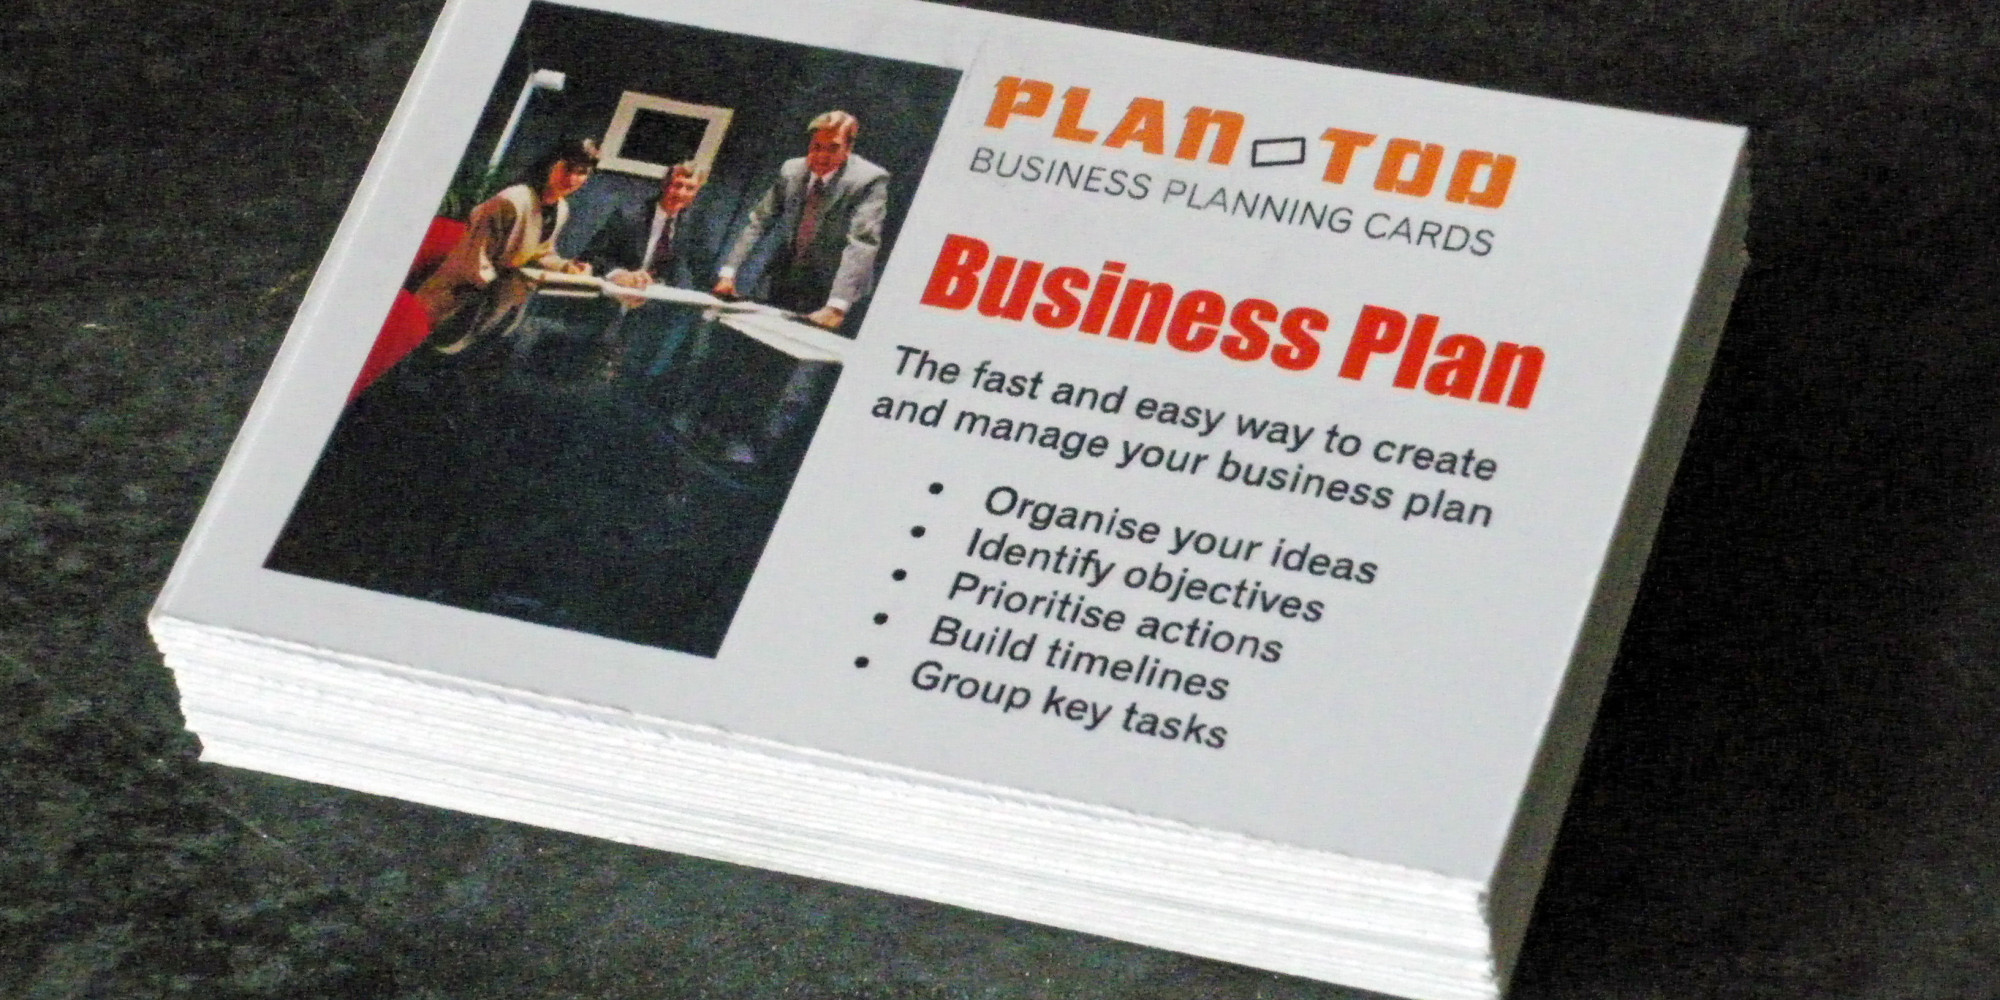 Steakhouse business plan